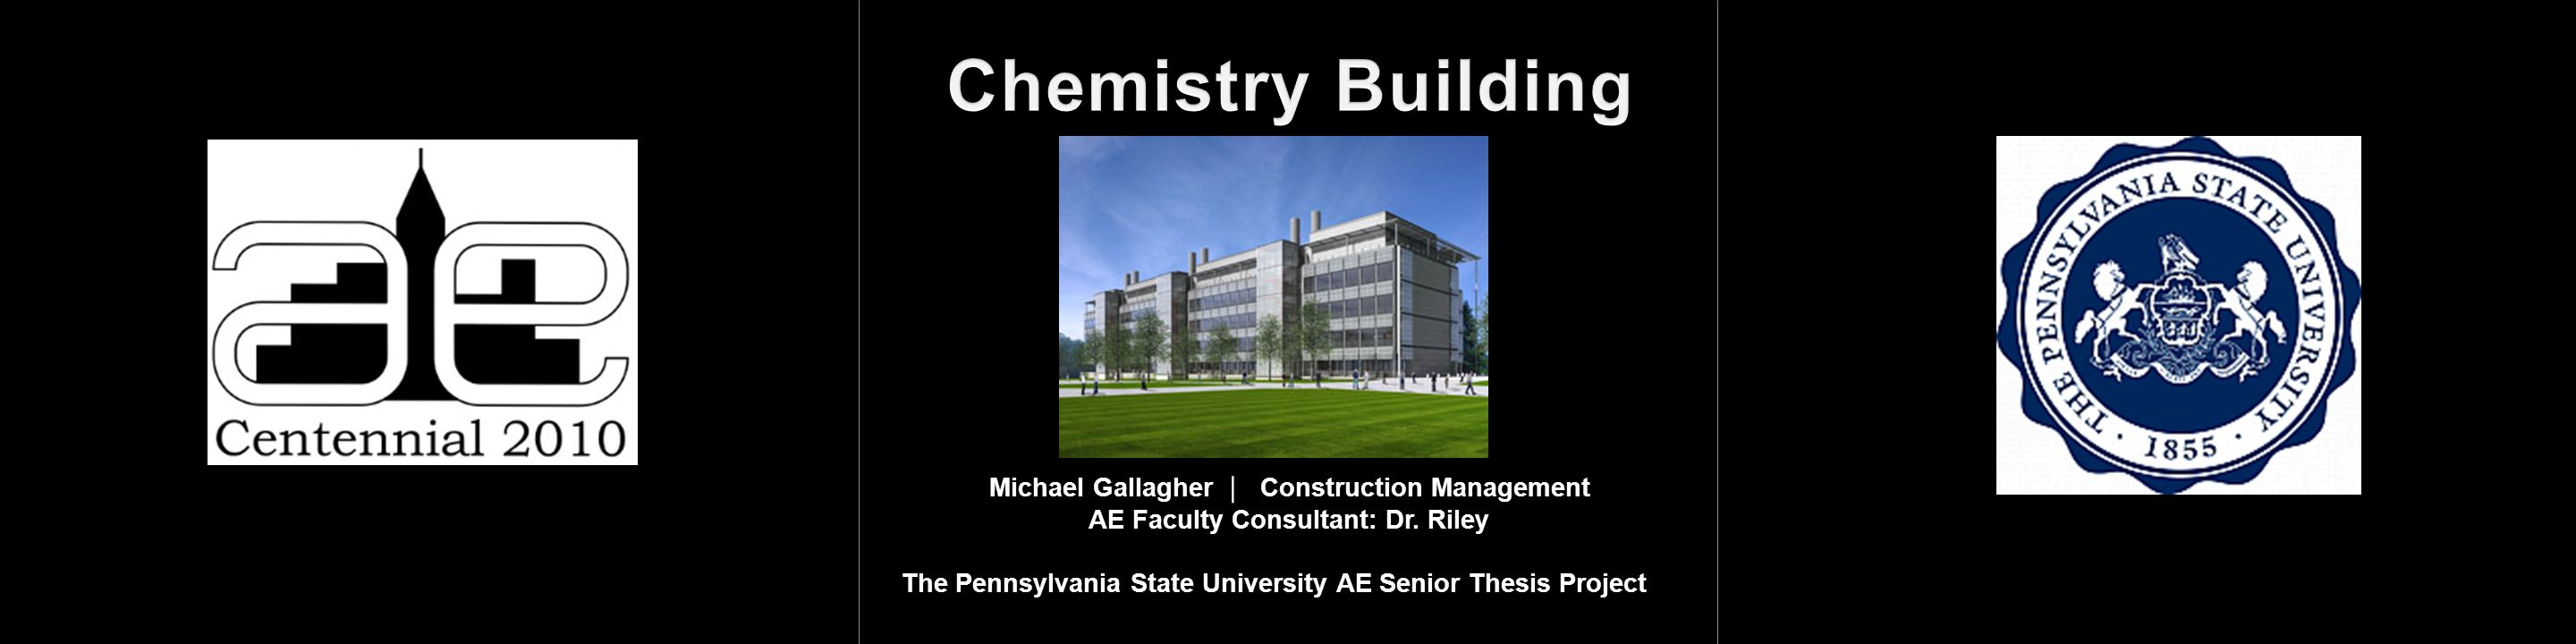  Project Background  Analysis #1: Bringing BIM Into the Field  Vico Software and Trimble  Vela Systems  Impacts of Implementing New Technology  Analysis #2: Alternative Curtain Wall Systems  Analysis #3 : Feasibility of PV Curtain Wall System  Lessons Learned  Acknowledgments & Questions Michael Gallagher AE Senior Thesis 2011 Construction Management Advisor: Dr.